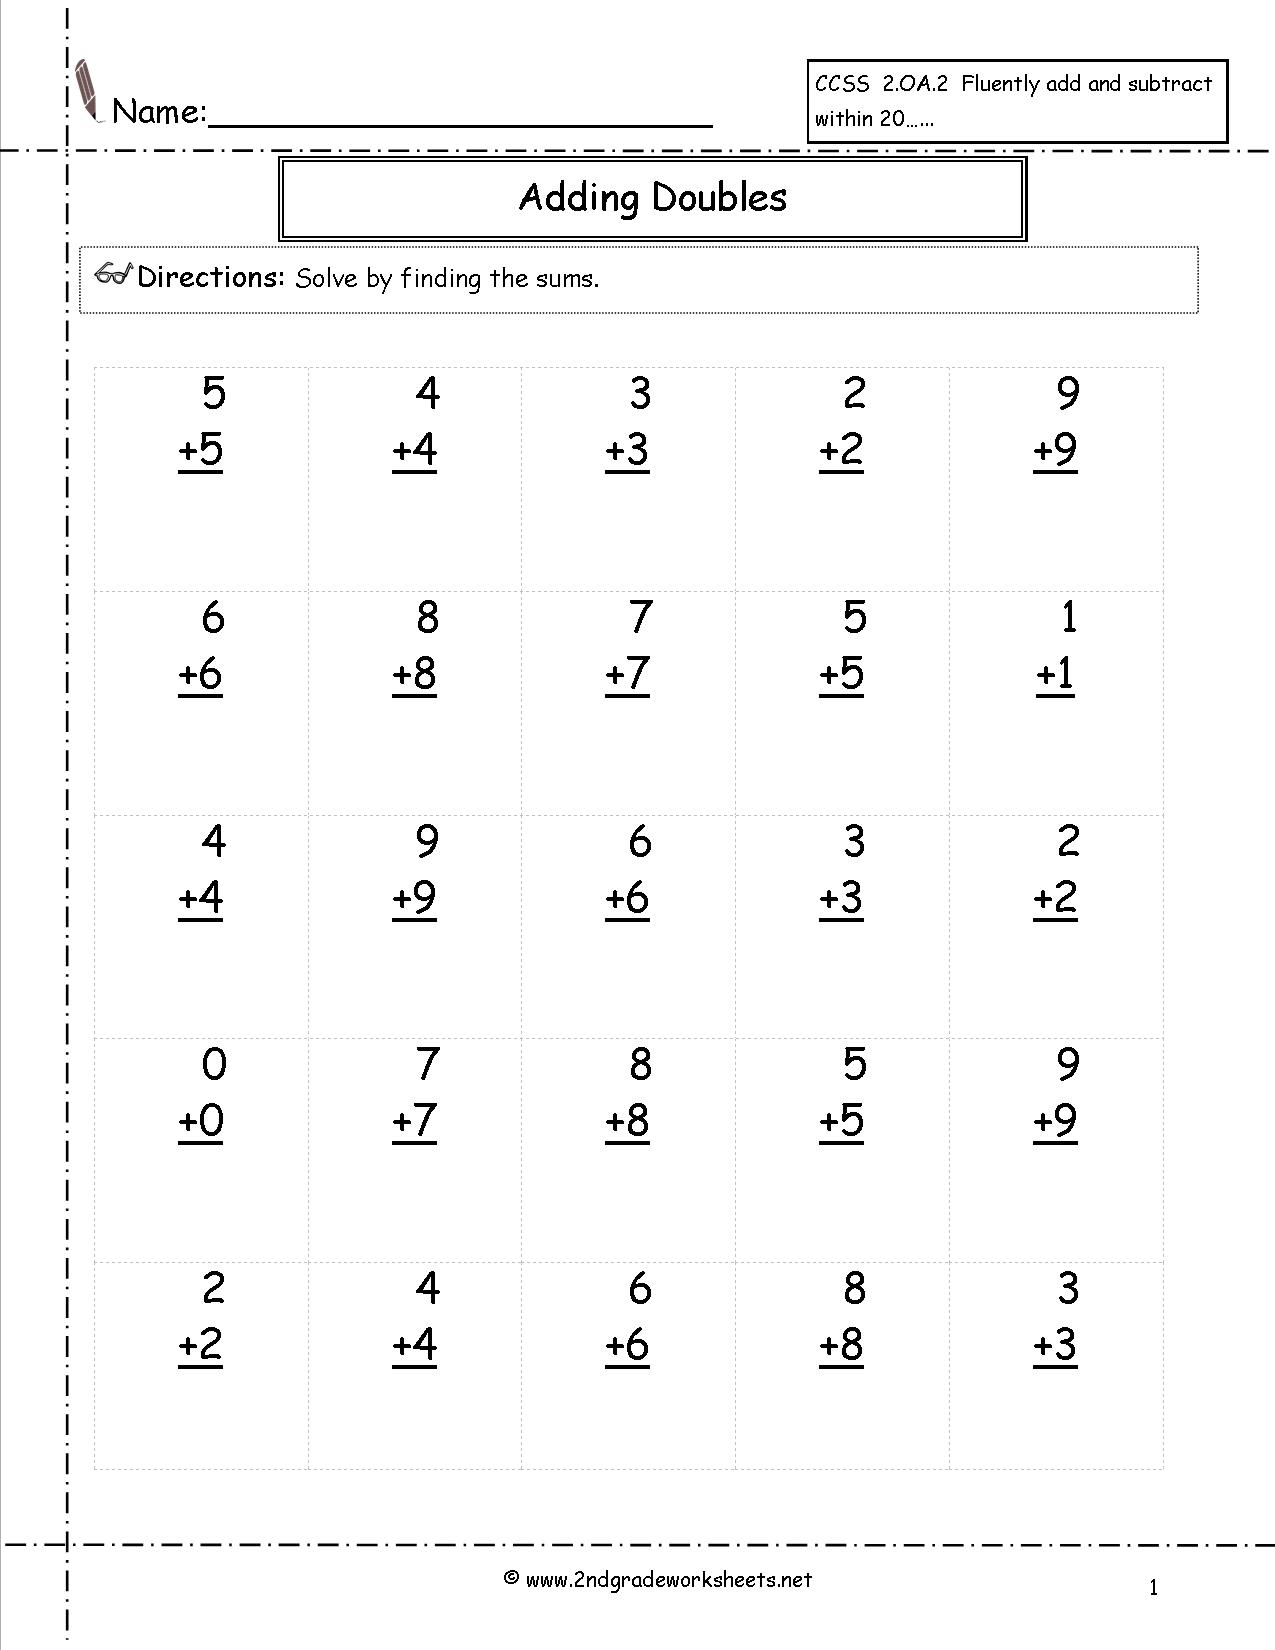 Double Addition Worksheets The Best Worksheets Image Collection